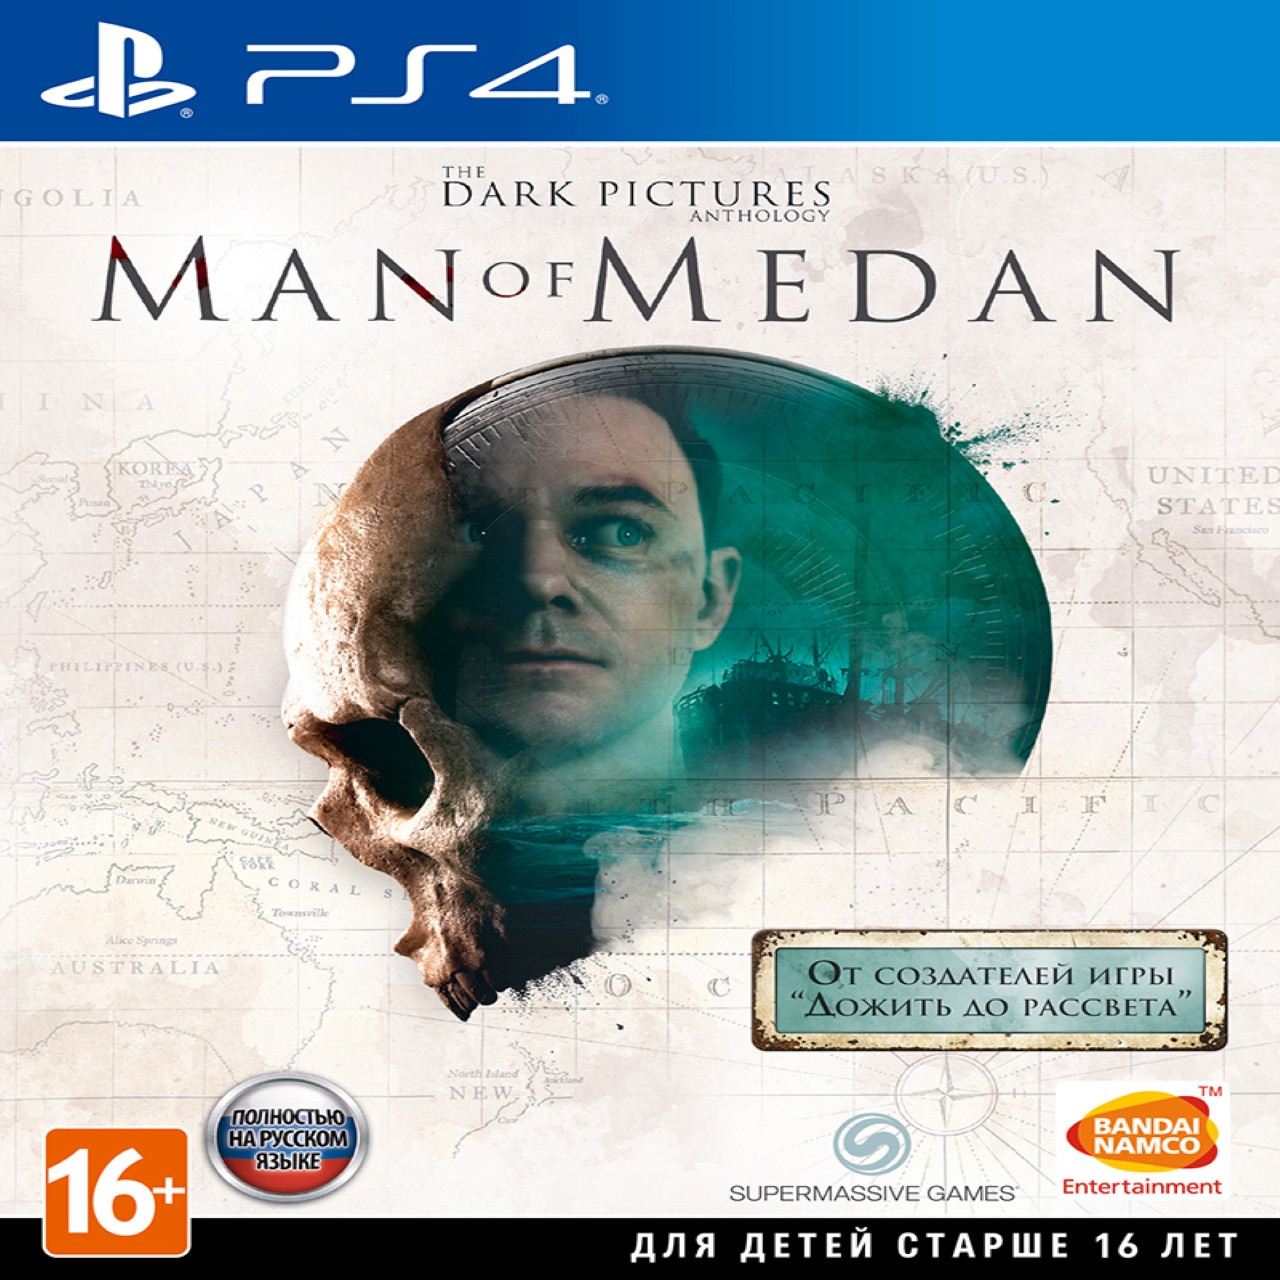 The Dark Pictures: Man of Medan RUS PS4 (NEW)